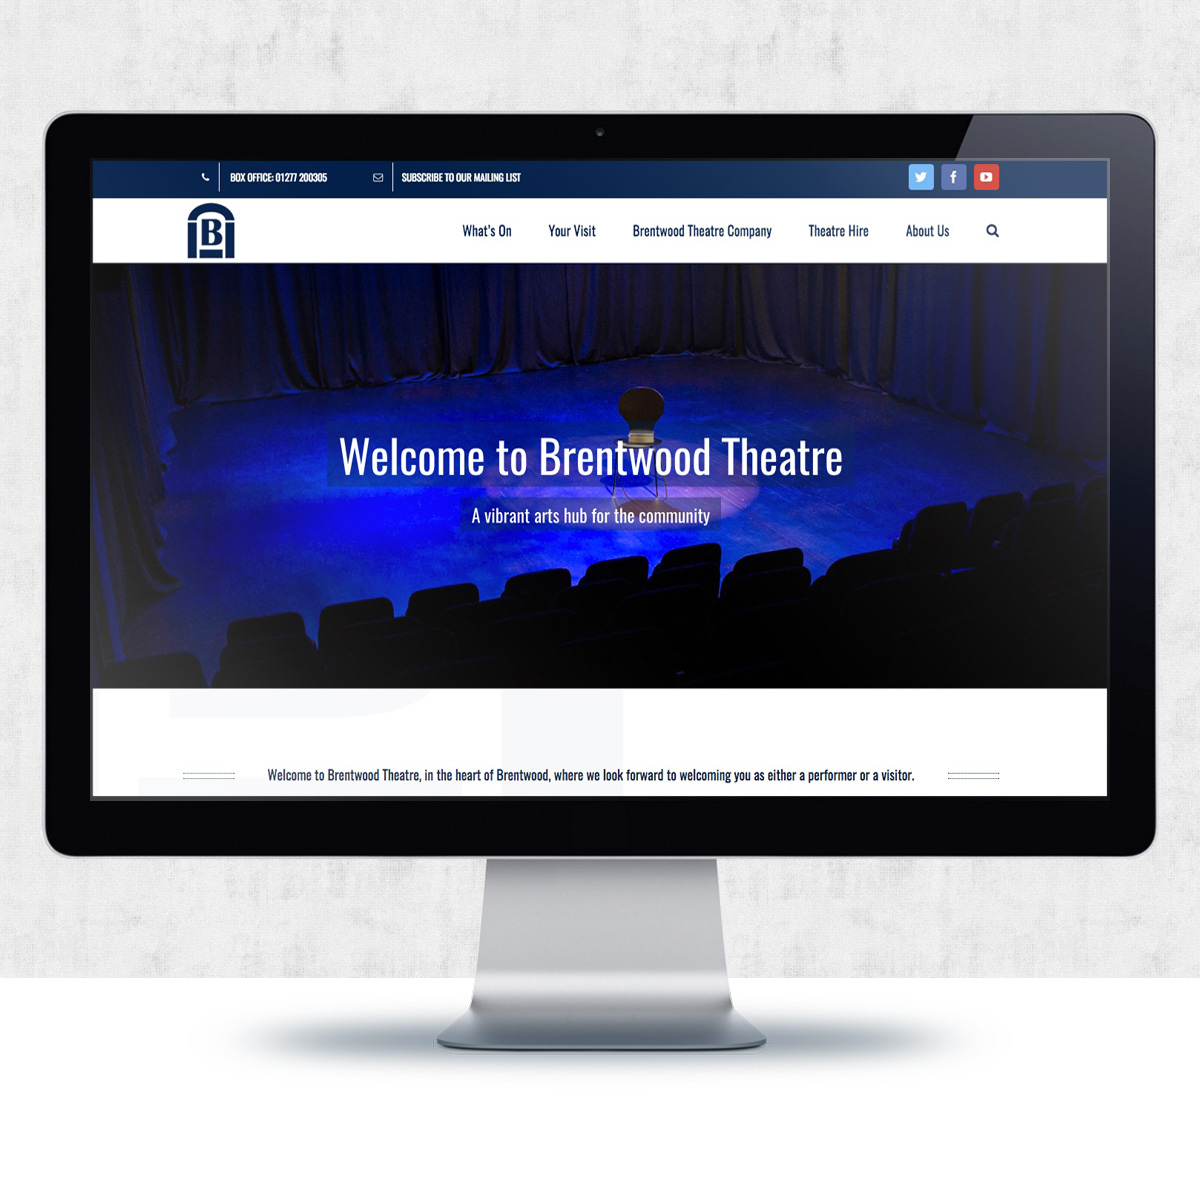 Brentwood Theatre Website Design | The Digital Moose